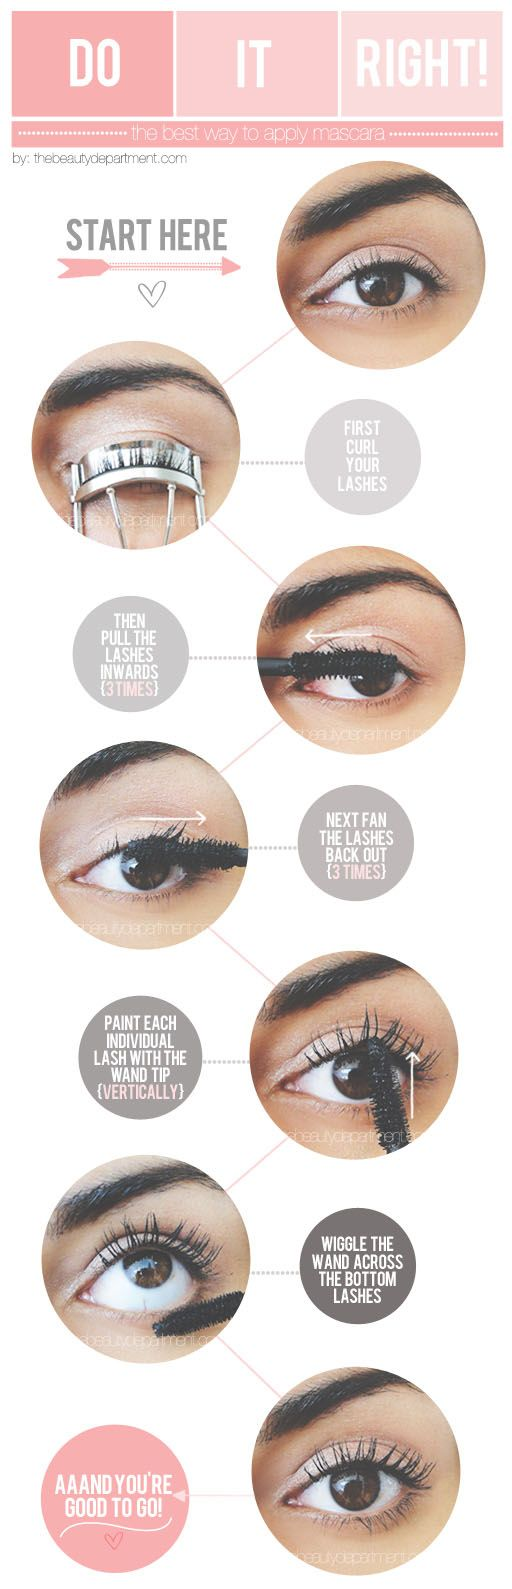 the best way to apply mascara #makeup #tutorial #beauty #mascara http://www.fashiondivadesign.com/20-helpful-makeup-tutorials/